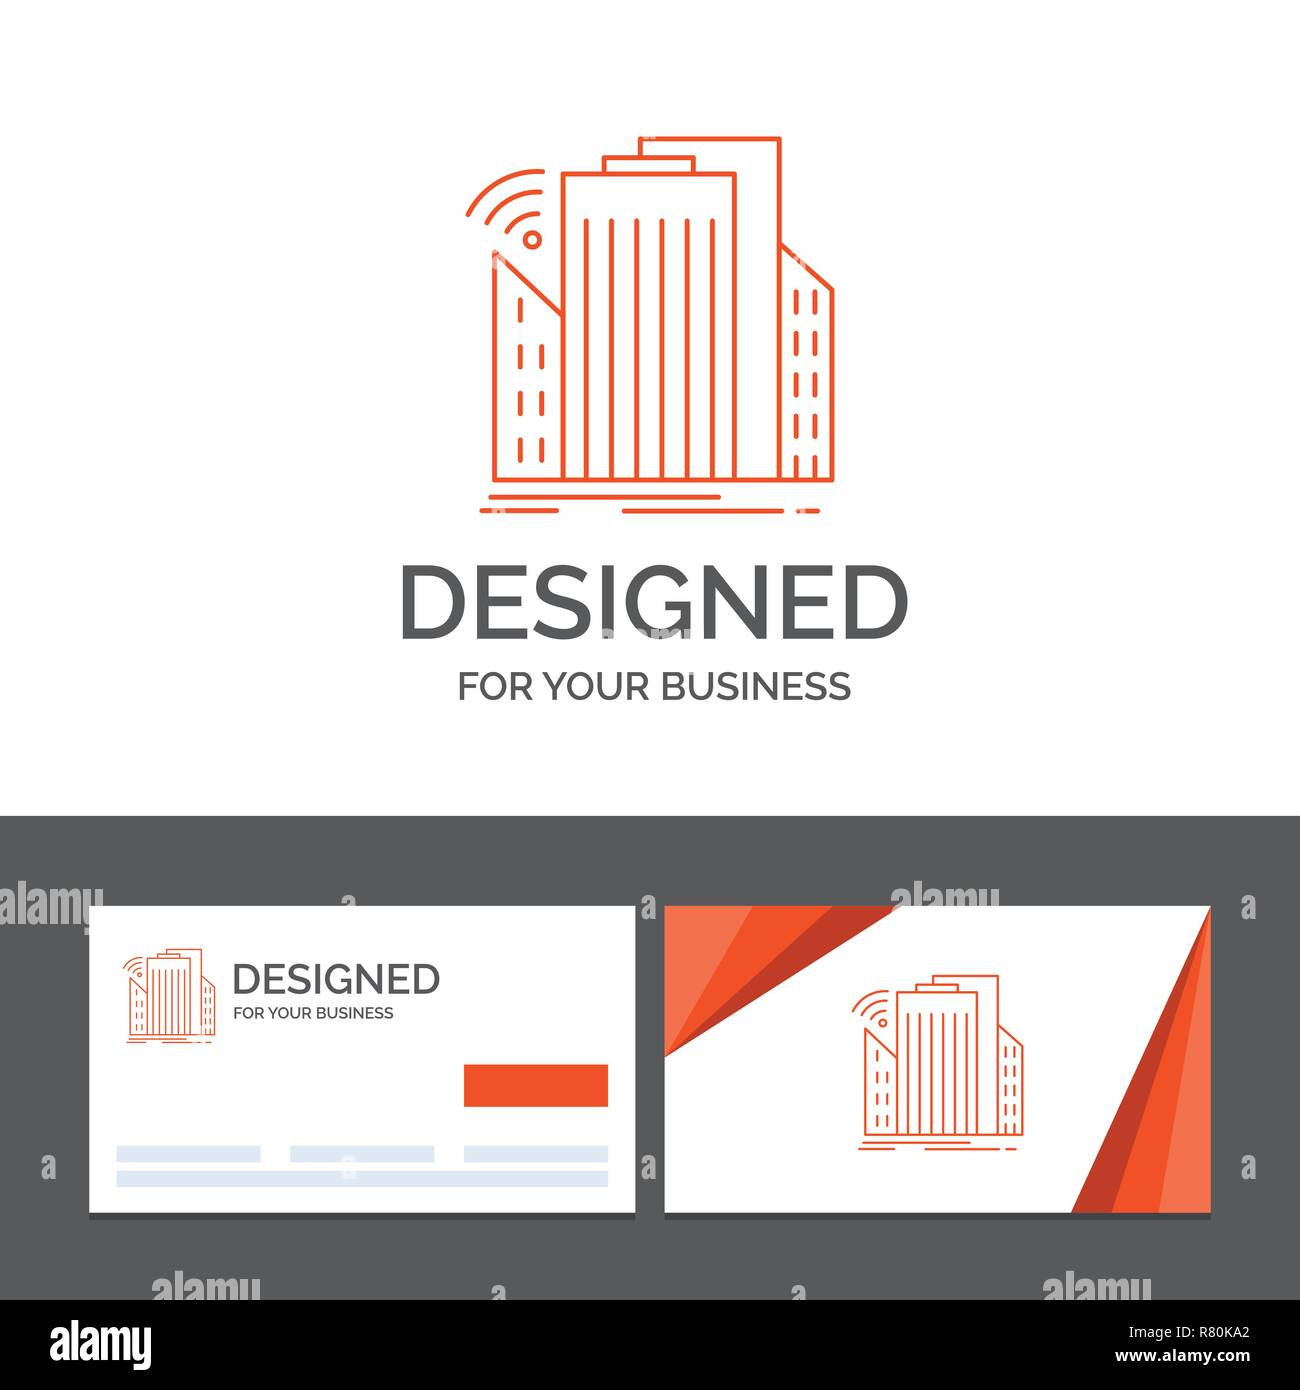 Business logo template for Buildings, city, sensor, smart, urban. Orange Visiting Cards with Brand logo template - Stock Vector